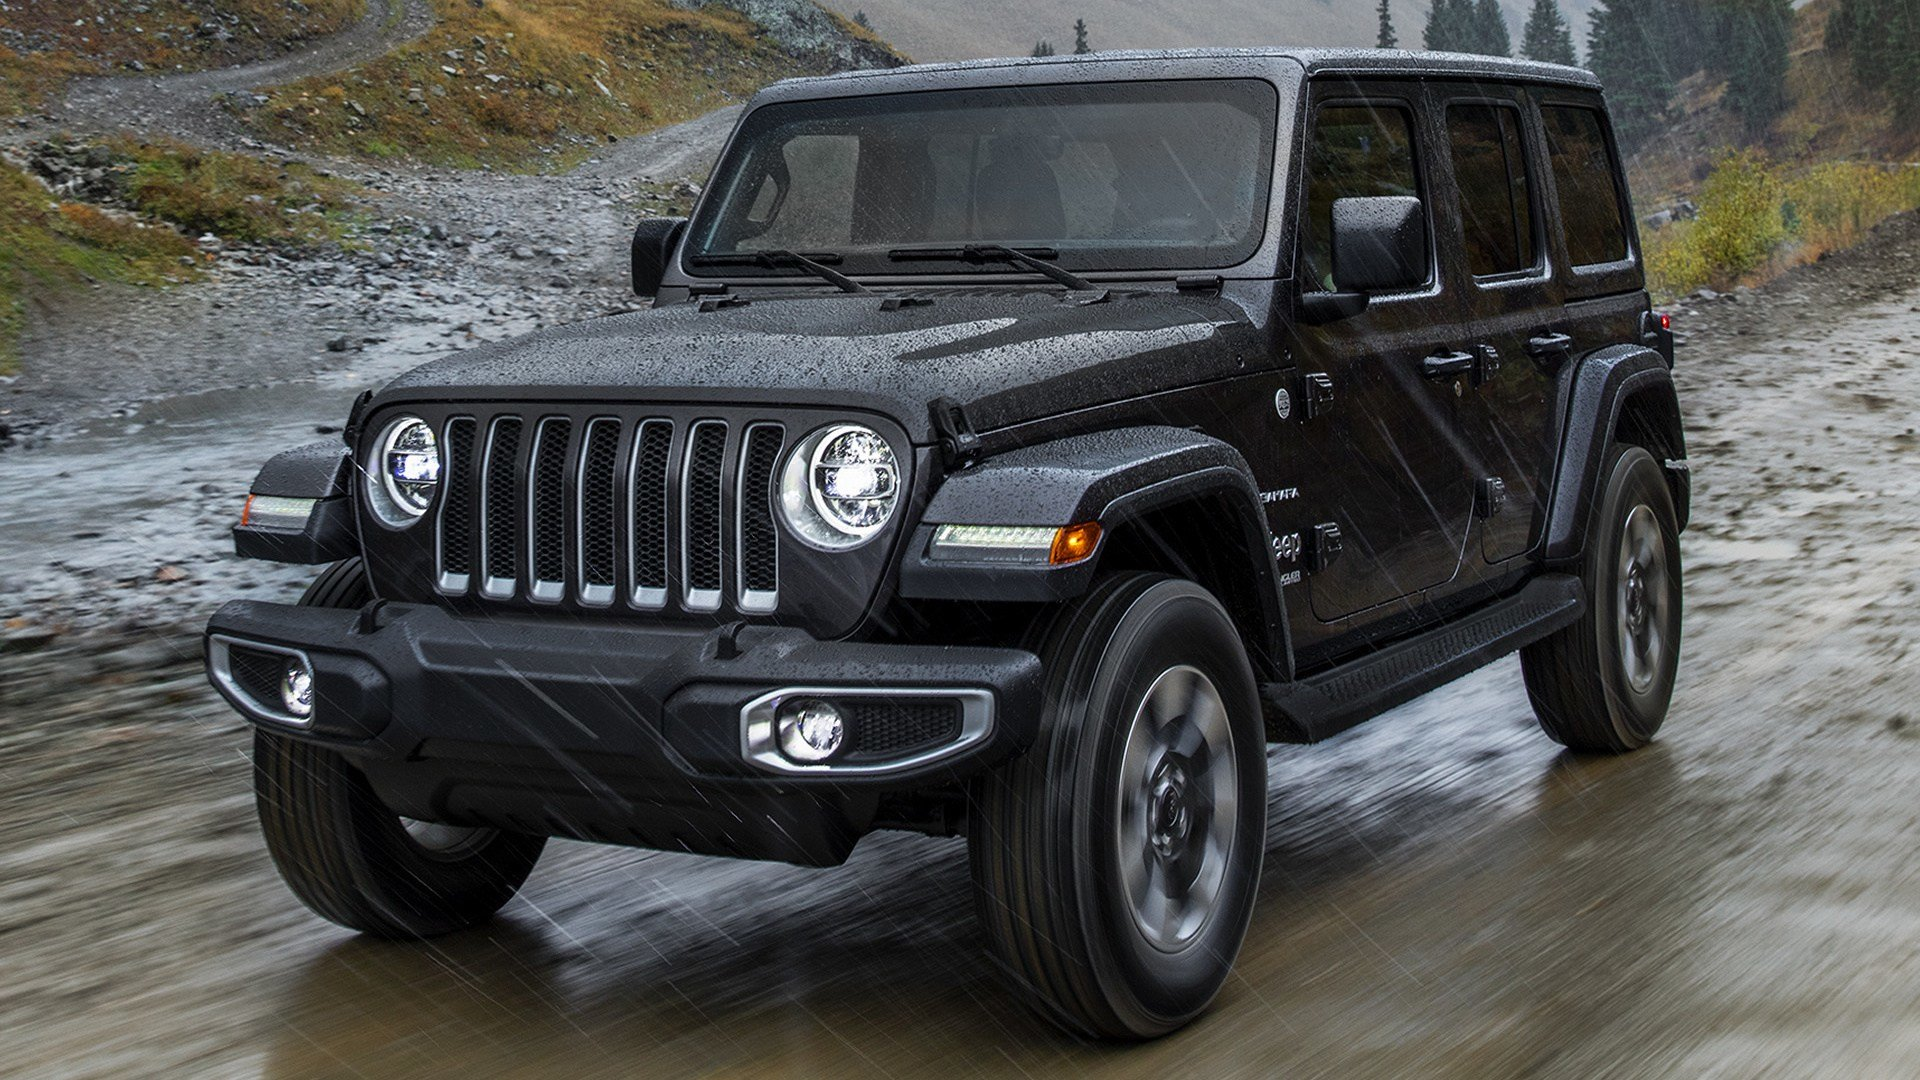 New 2018 Jeep Wrangler Unlimited Sahara Wallpapers And Hd On This Month